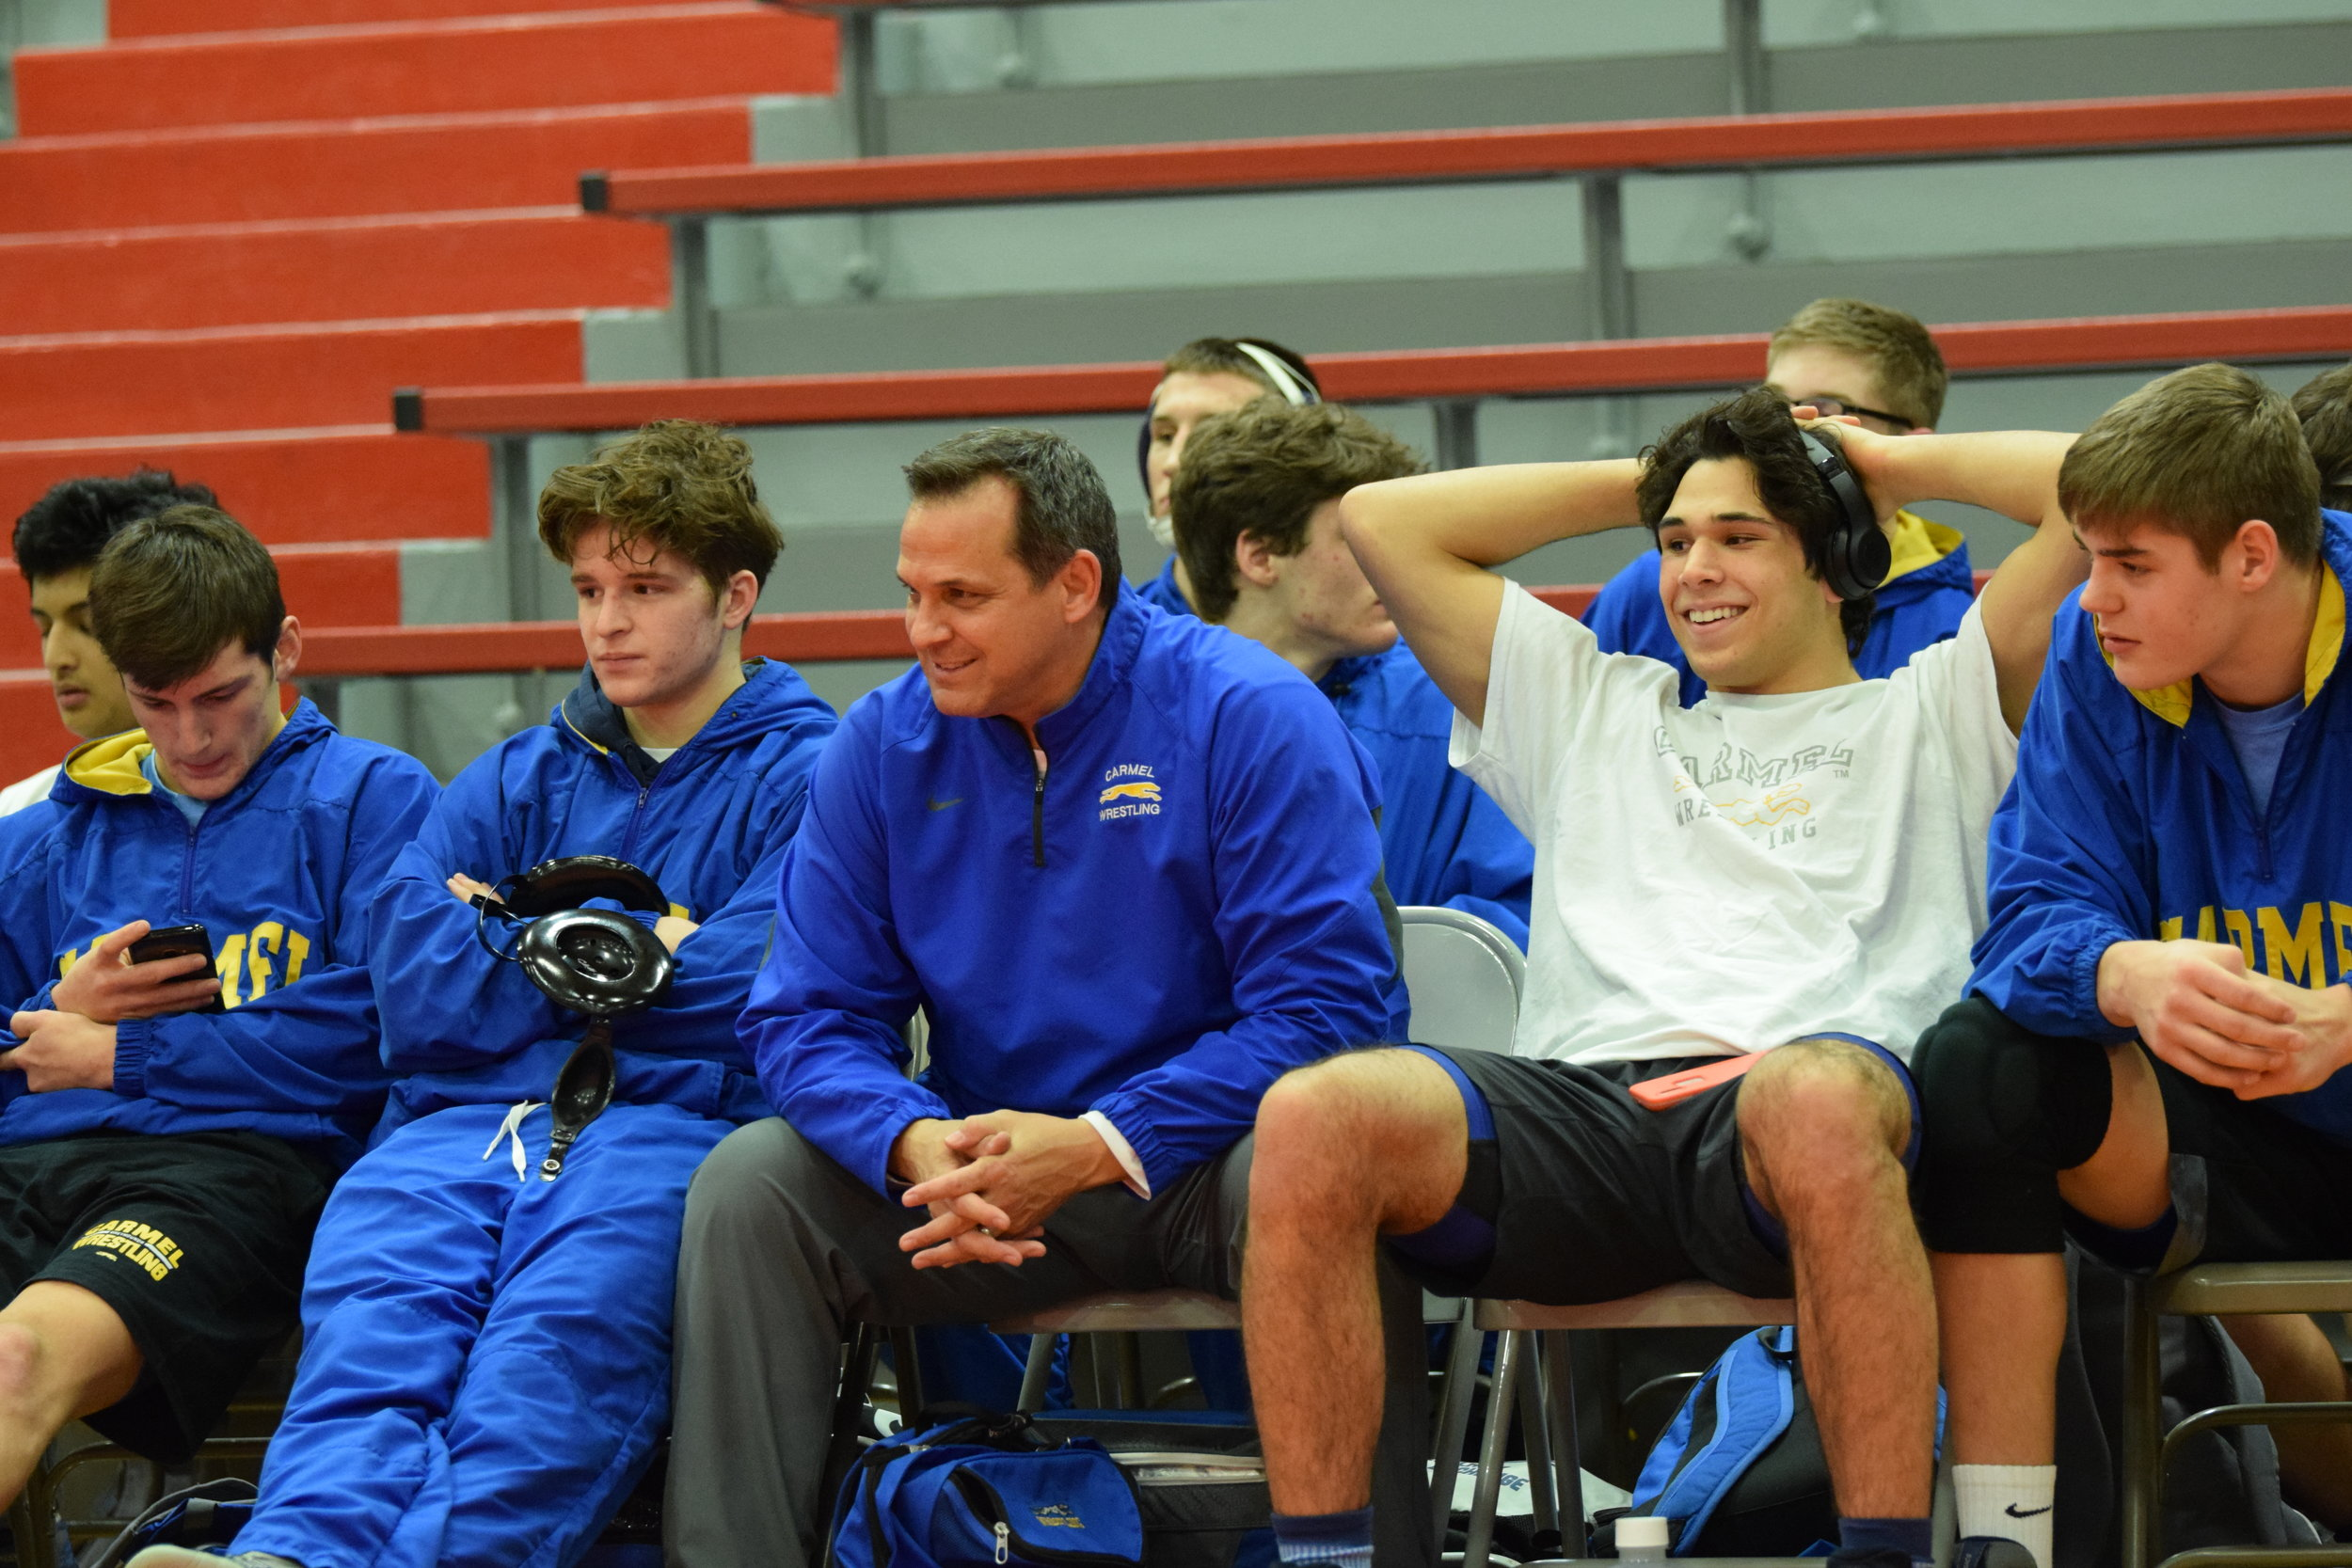 Jim Selvio - Assistant CoachContact: jim.selvio@carmelusawrestling.orgLogansport High School Grad 19854x Letter WinnerState Semi-finalist 1984Wabash College Grad 19894x Letter Winner Wabash WrestlingCareer Record: 76-23-2Team Captain 1988-1989Coaching:Mount Vernon Middle School Coach, 2001-2002Exit 5 Wrestling Club, 2002North Central High School and Panther Wrestling Club Coach, 2002-2006Greyhound Wrestling Club, 2006-2011Founder, Carmel USA Wrestling Club, 2011Carmel USA Wrestling Club, 2011-Present